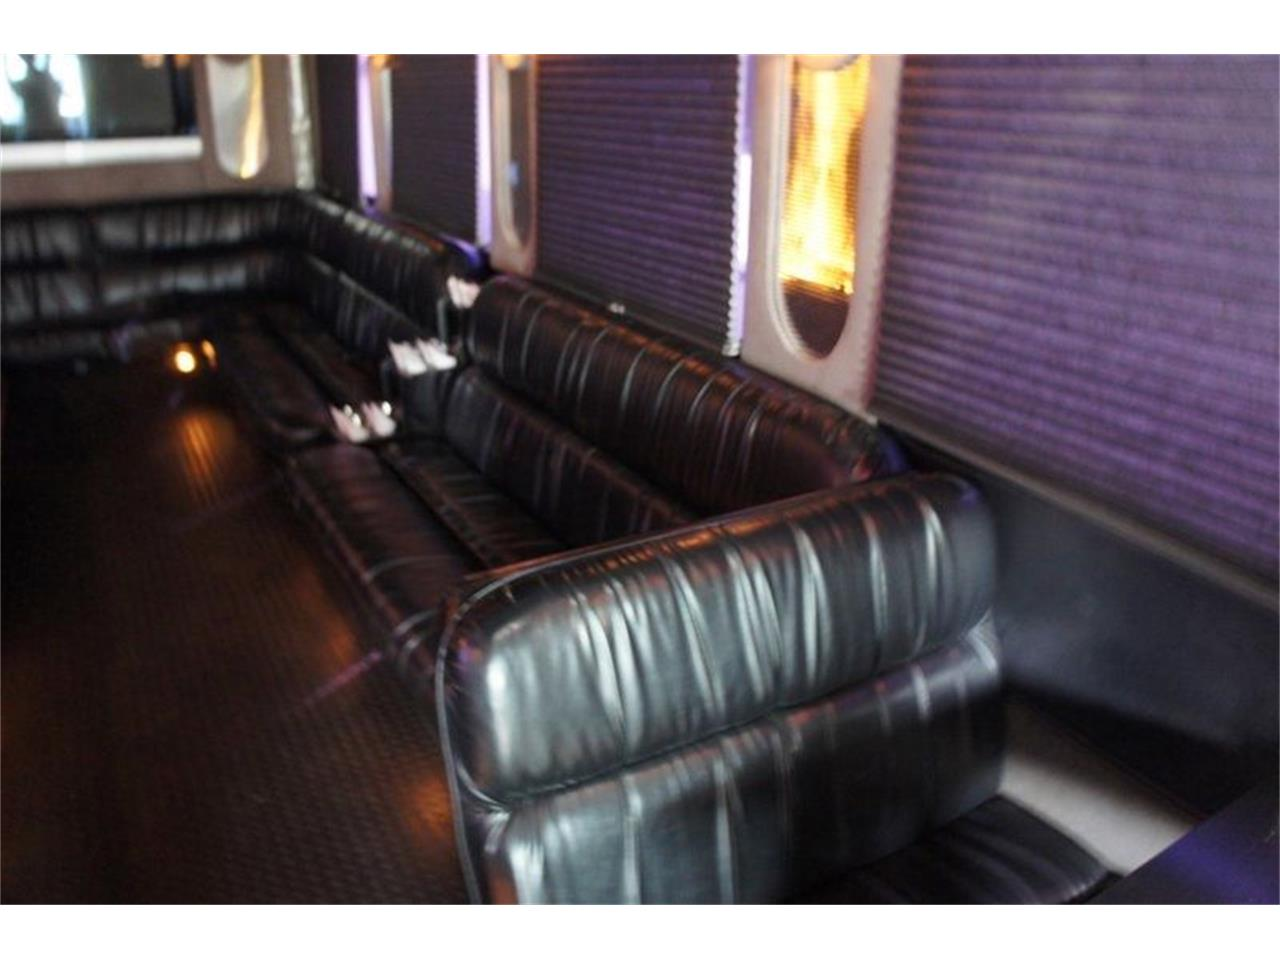 2001 Freightliner Bus for sale in Stratford, NJ – photo 13